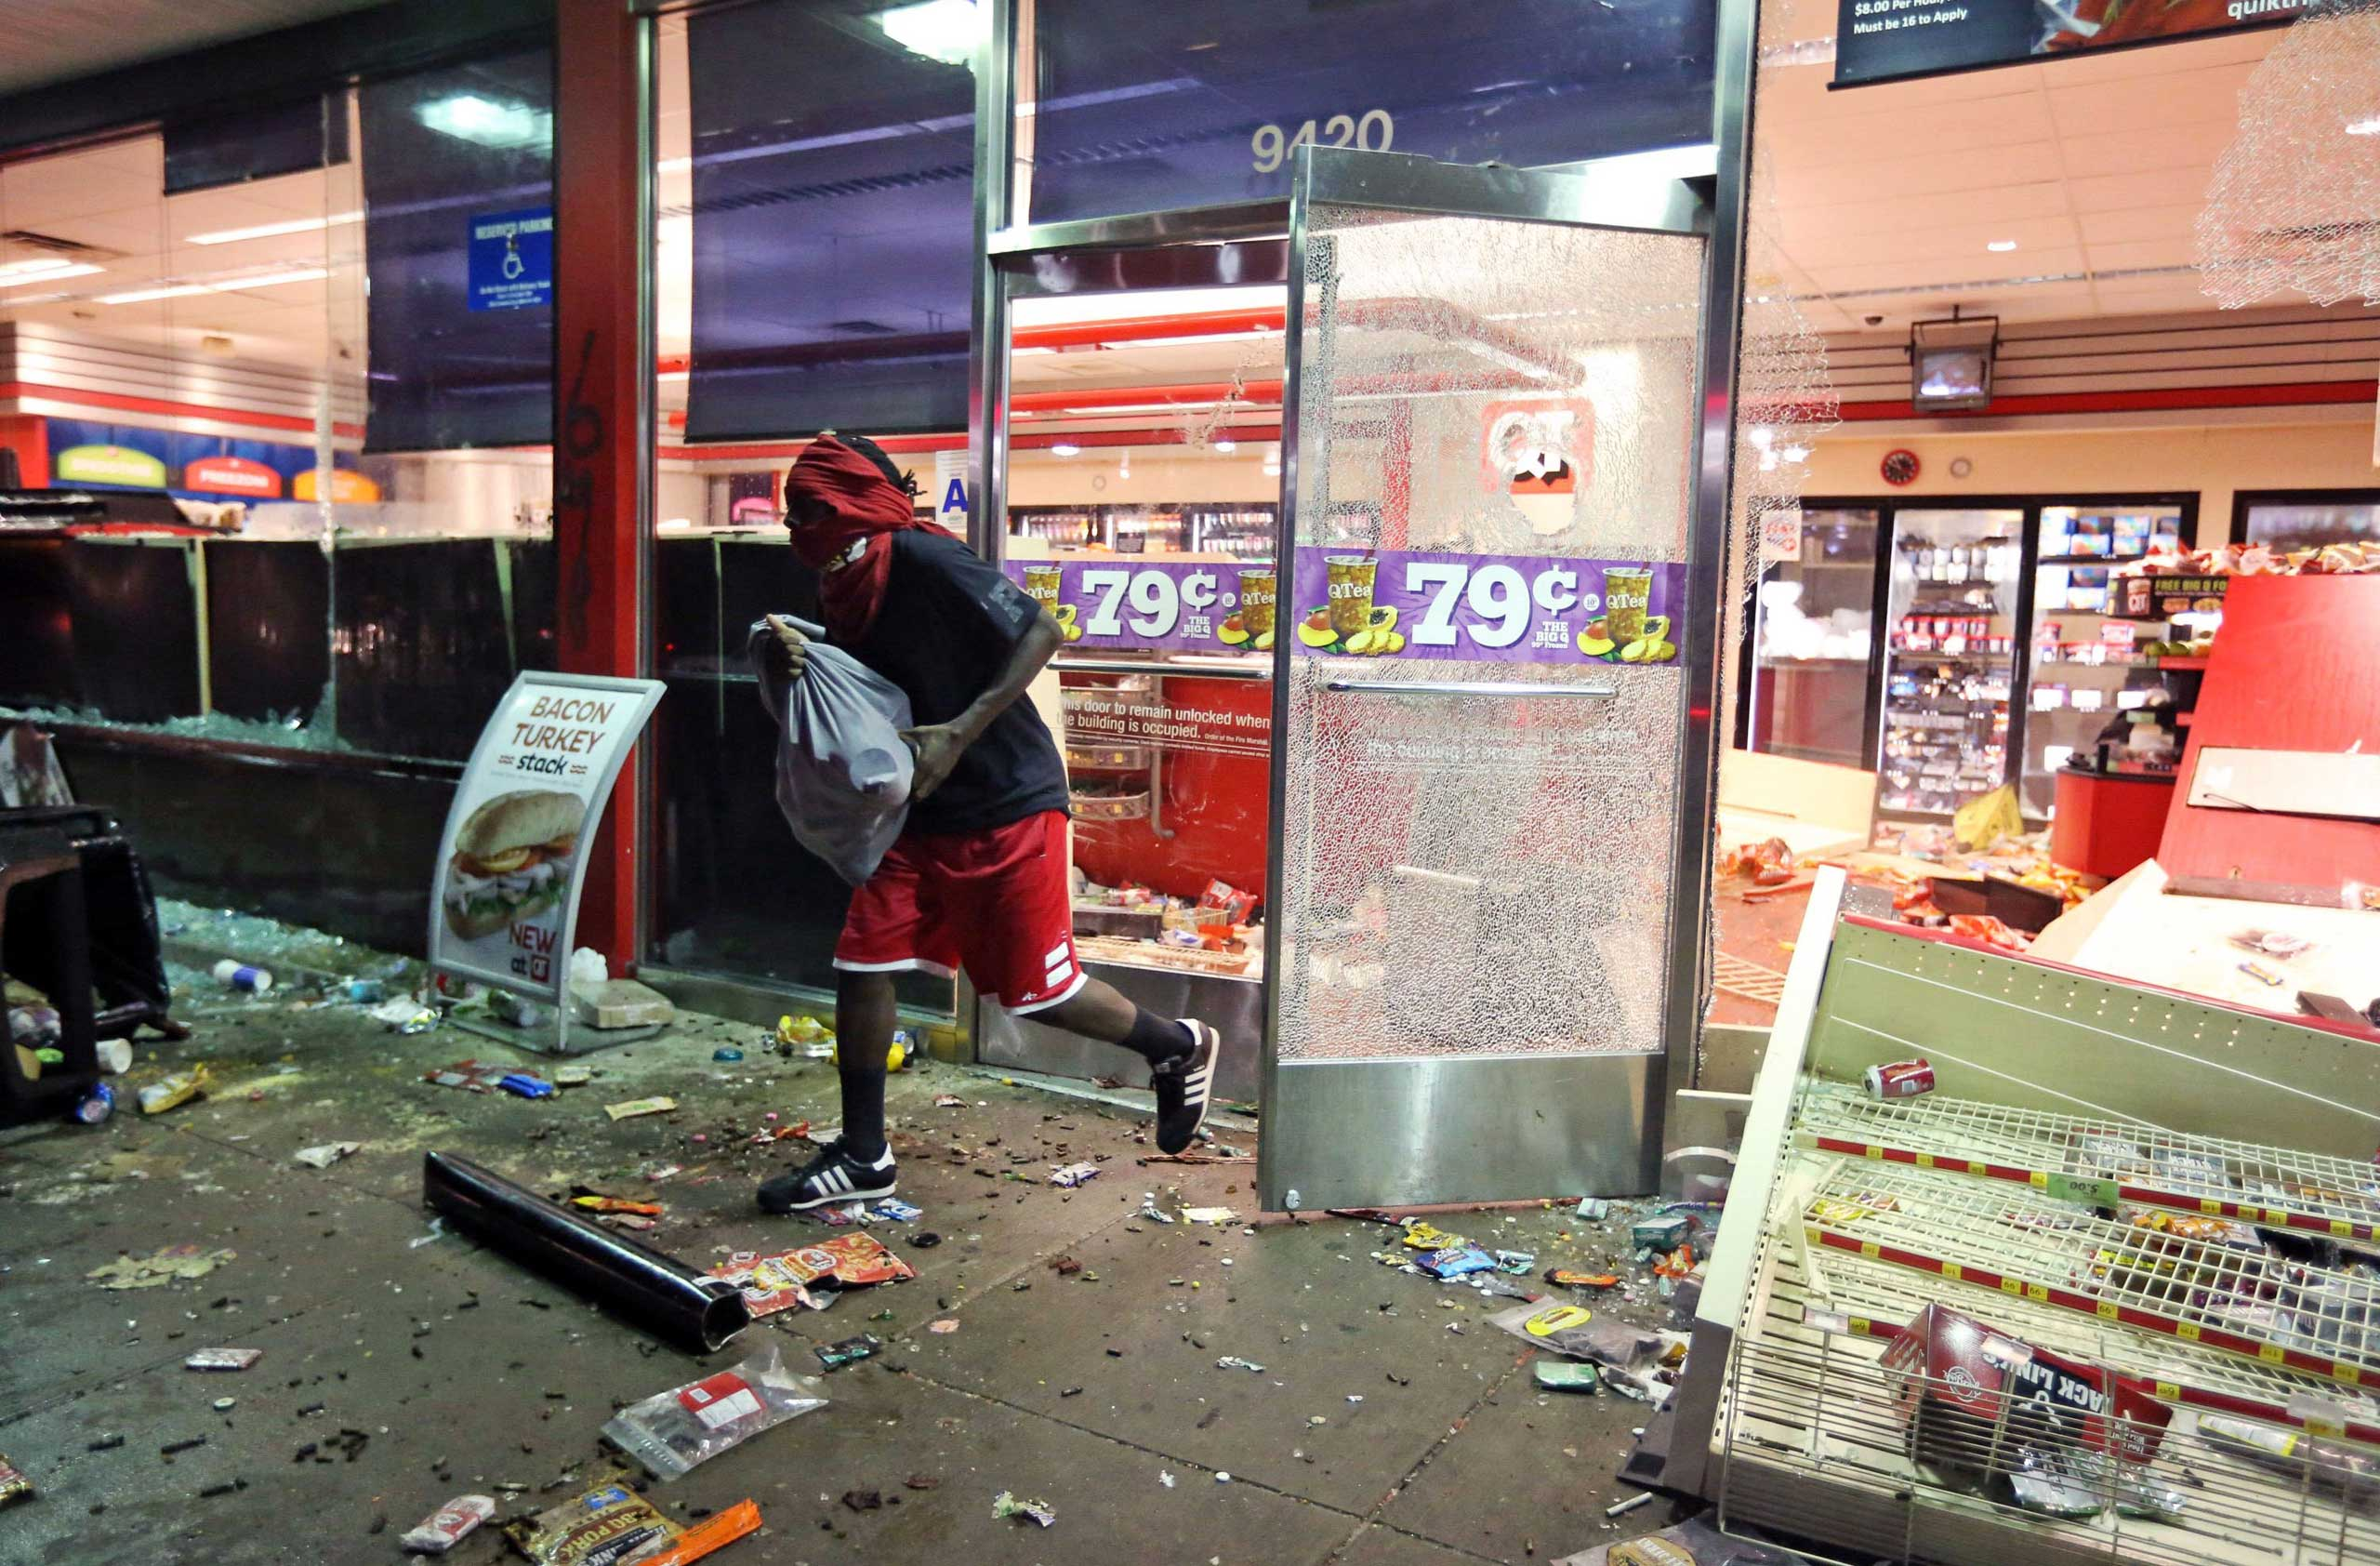 Aug. 10, 2014. A man leaves a store on Sunday, in Ferguson, Mo. A few thousand people crammed a suburban St. Louis street Sunday night at a vigil for unarmed 18-year-old Michael Brown who was shot and killed by a police officer, while afterward several car windows were smashed and stores were looted as people carried away armloads of goods as witnessed by an an Associated Press reporter.